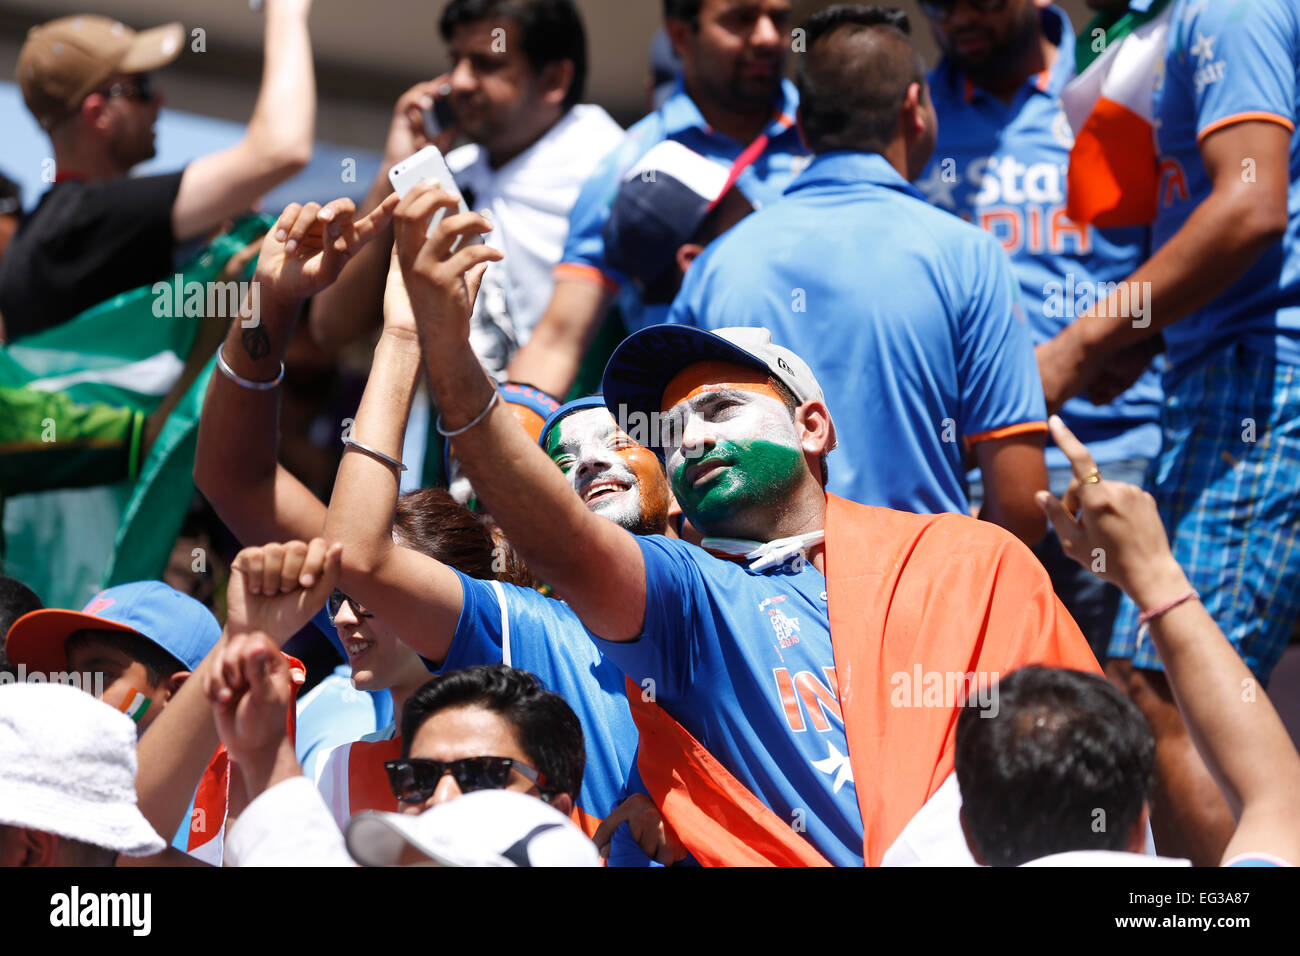 Indian cricket fans cheering Indian team during a cricket match - Stock Image